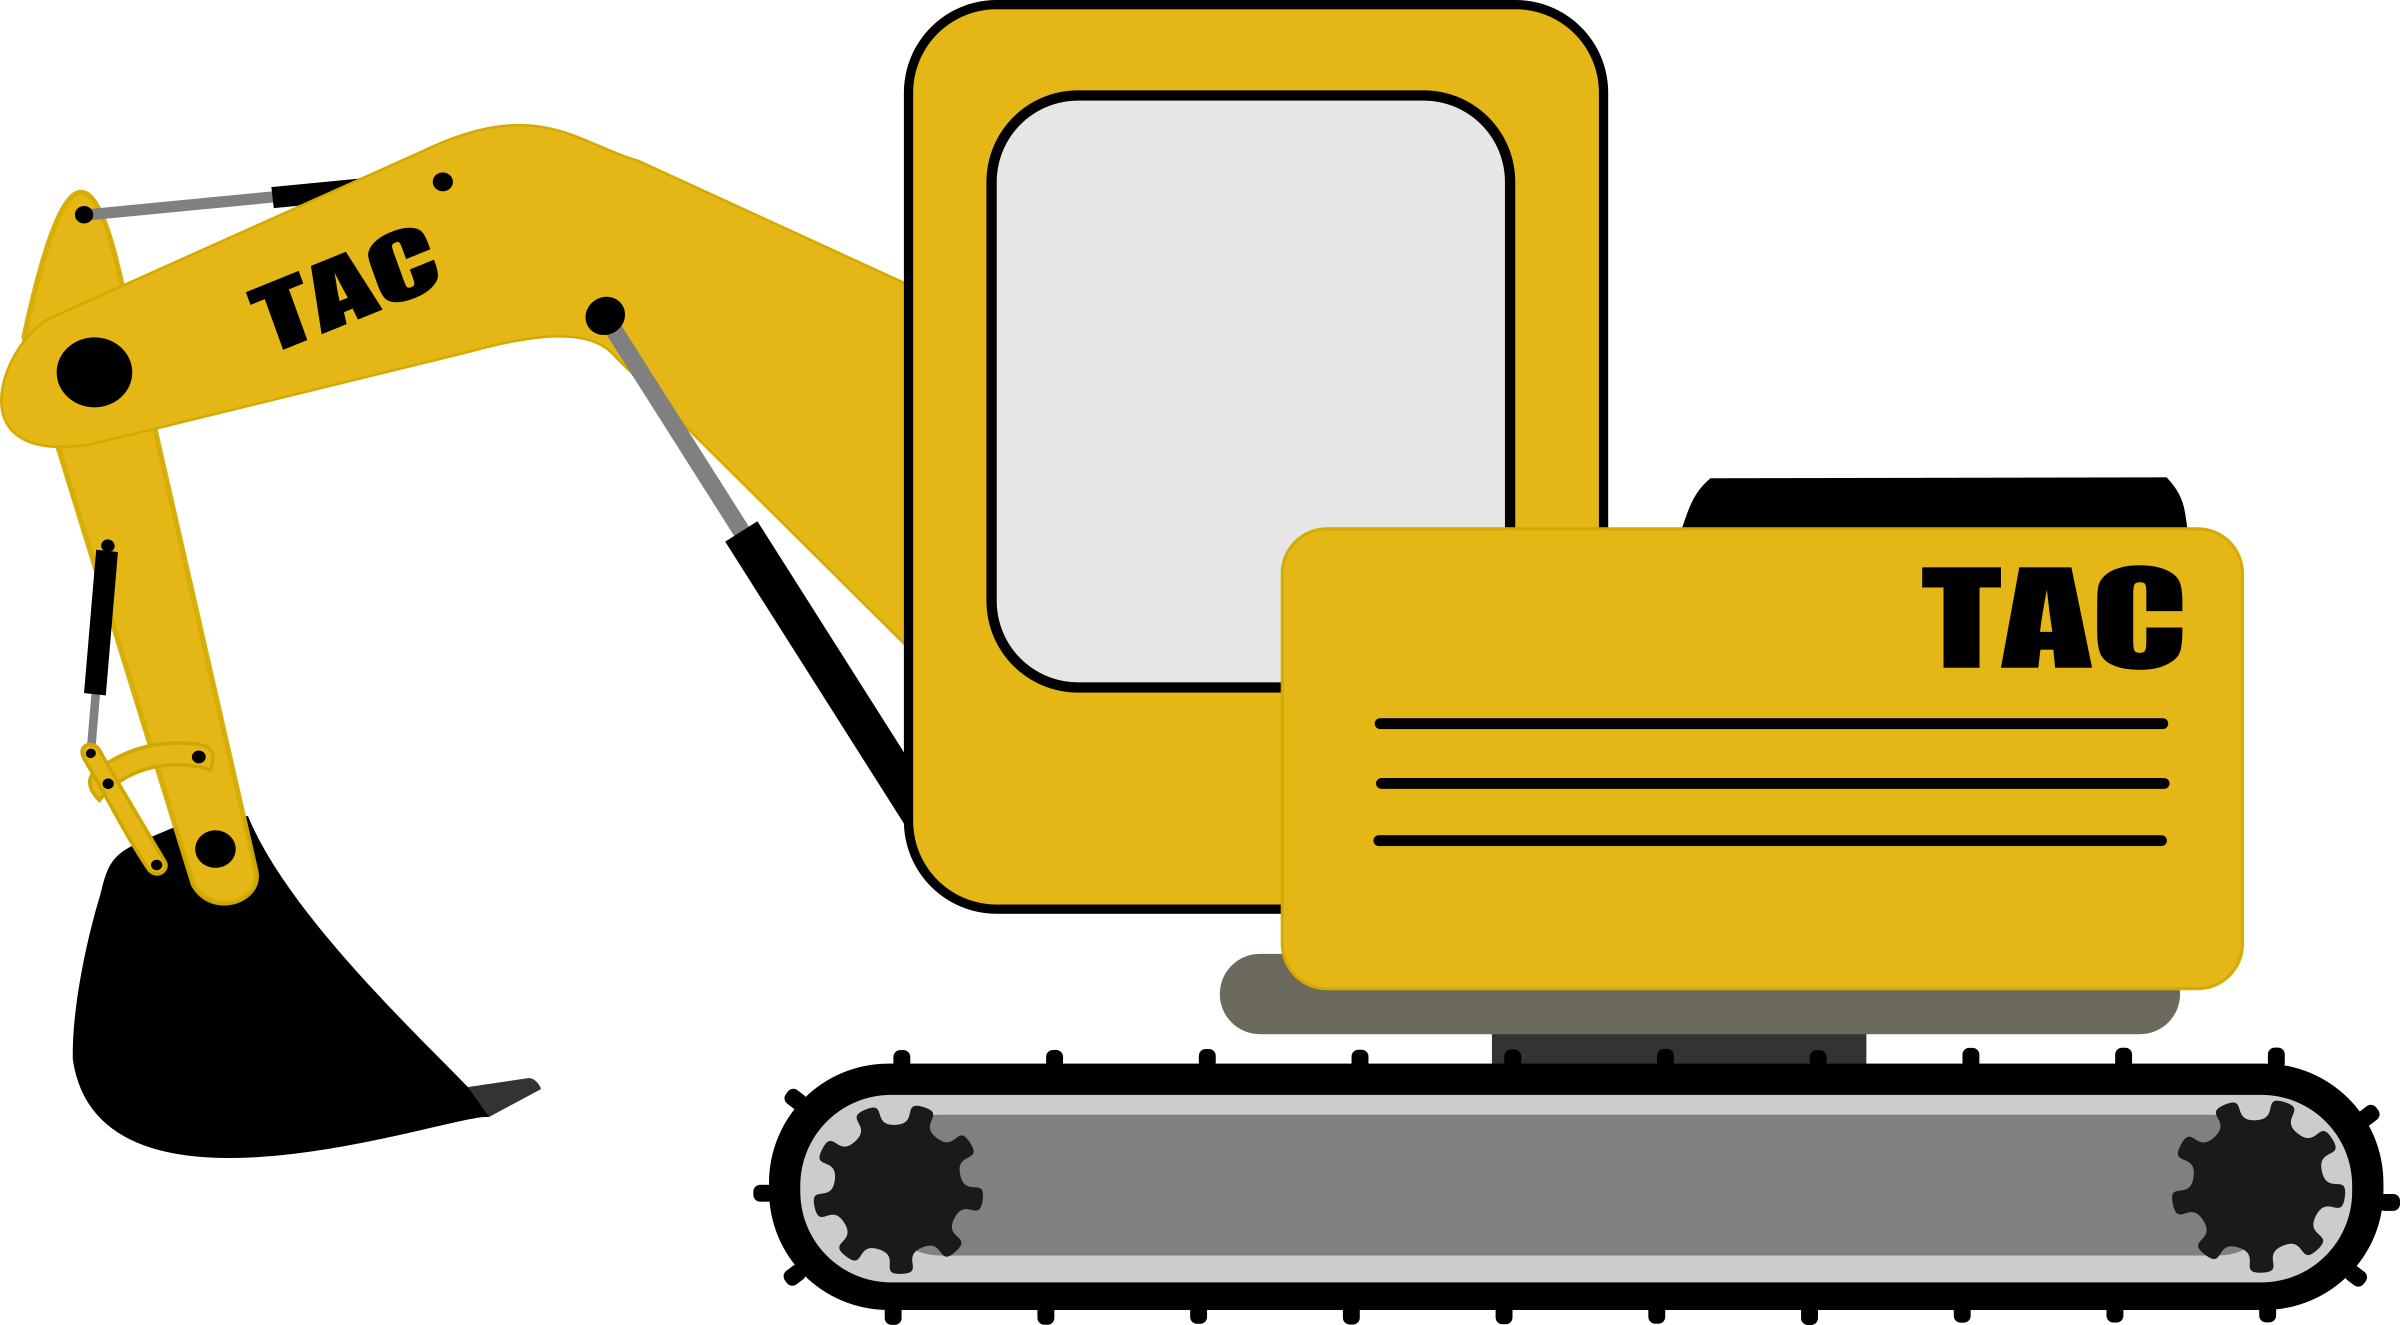 Toy clipart digger, Toy digger Transparent FREE for download.